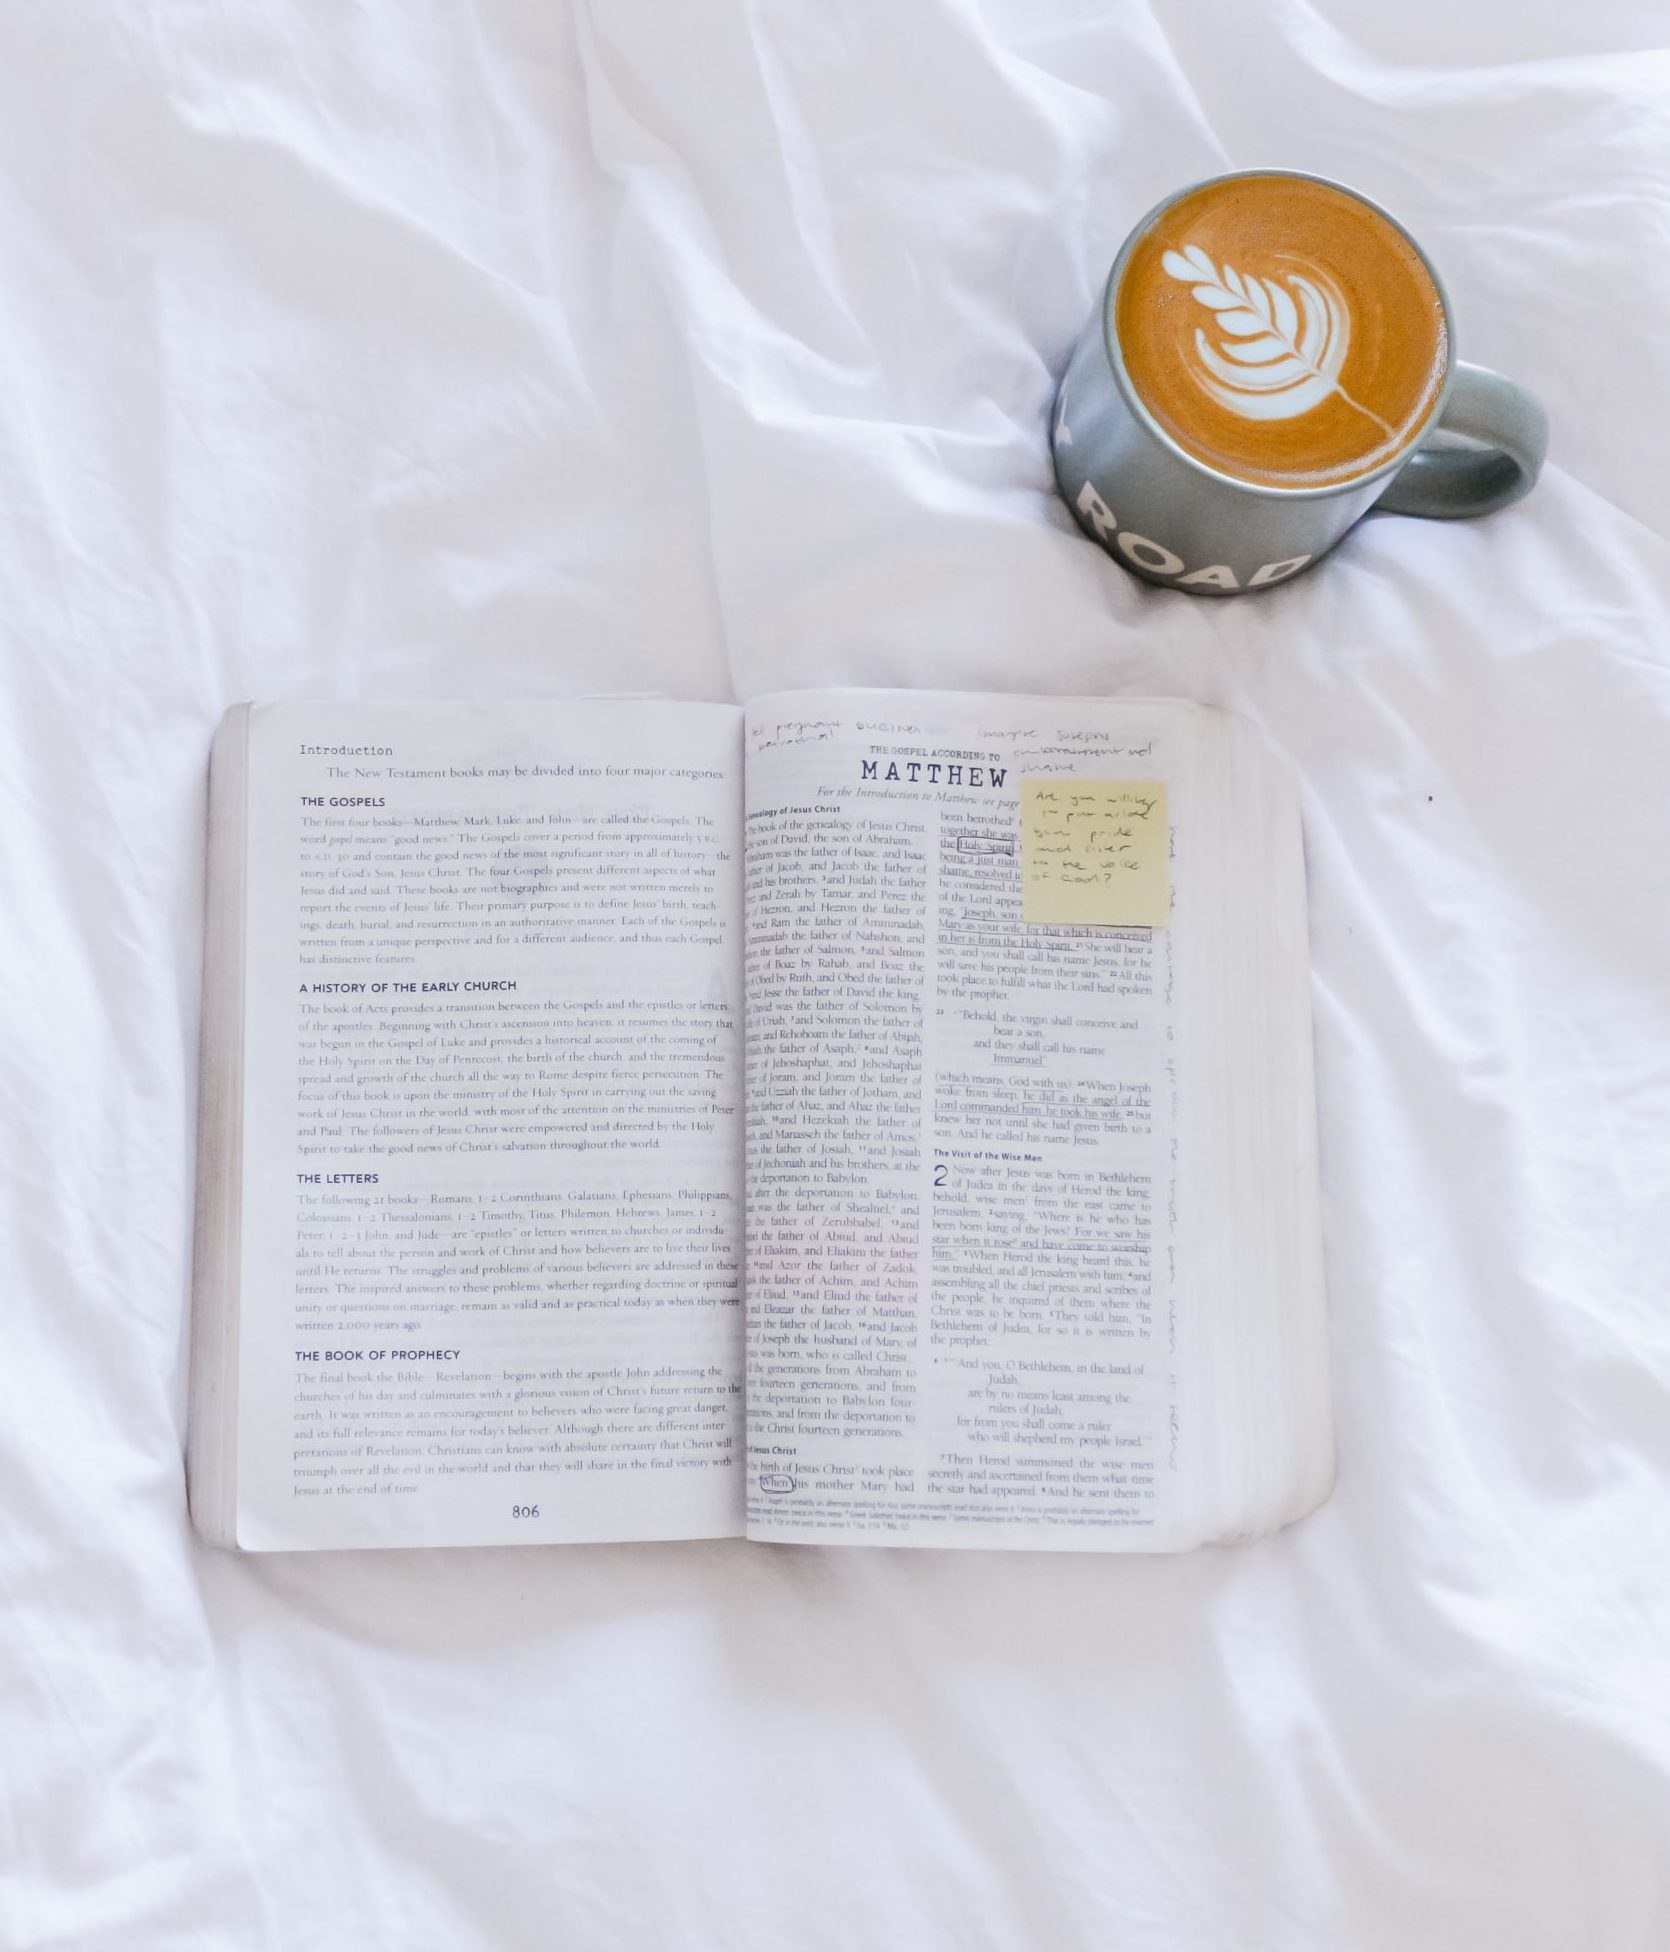 coffe cup with bible on white sheet